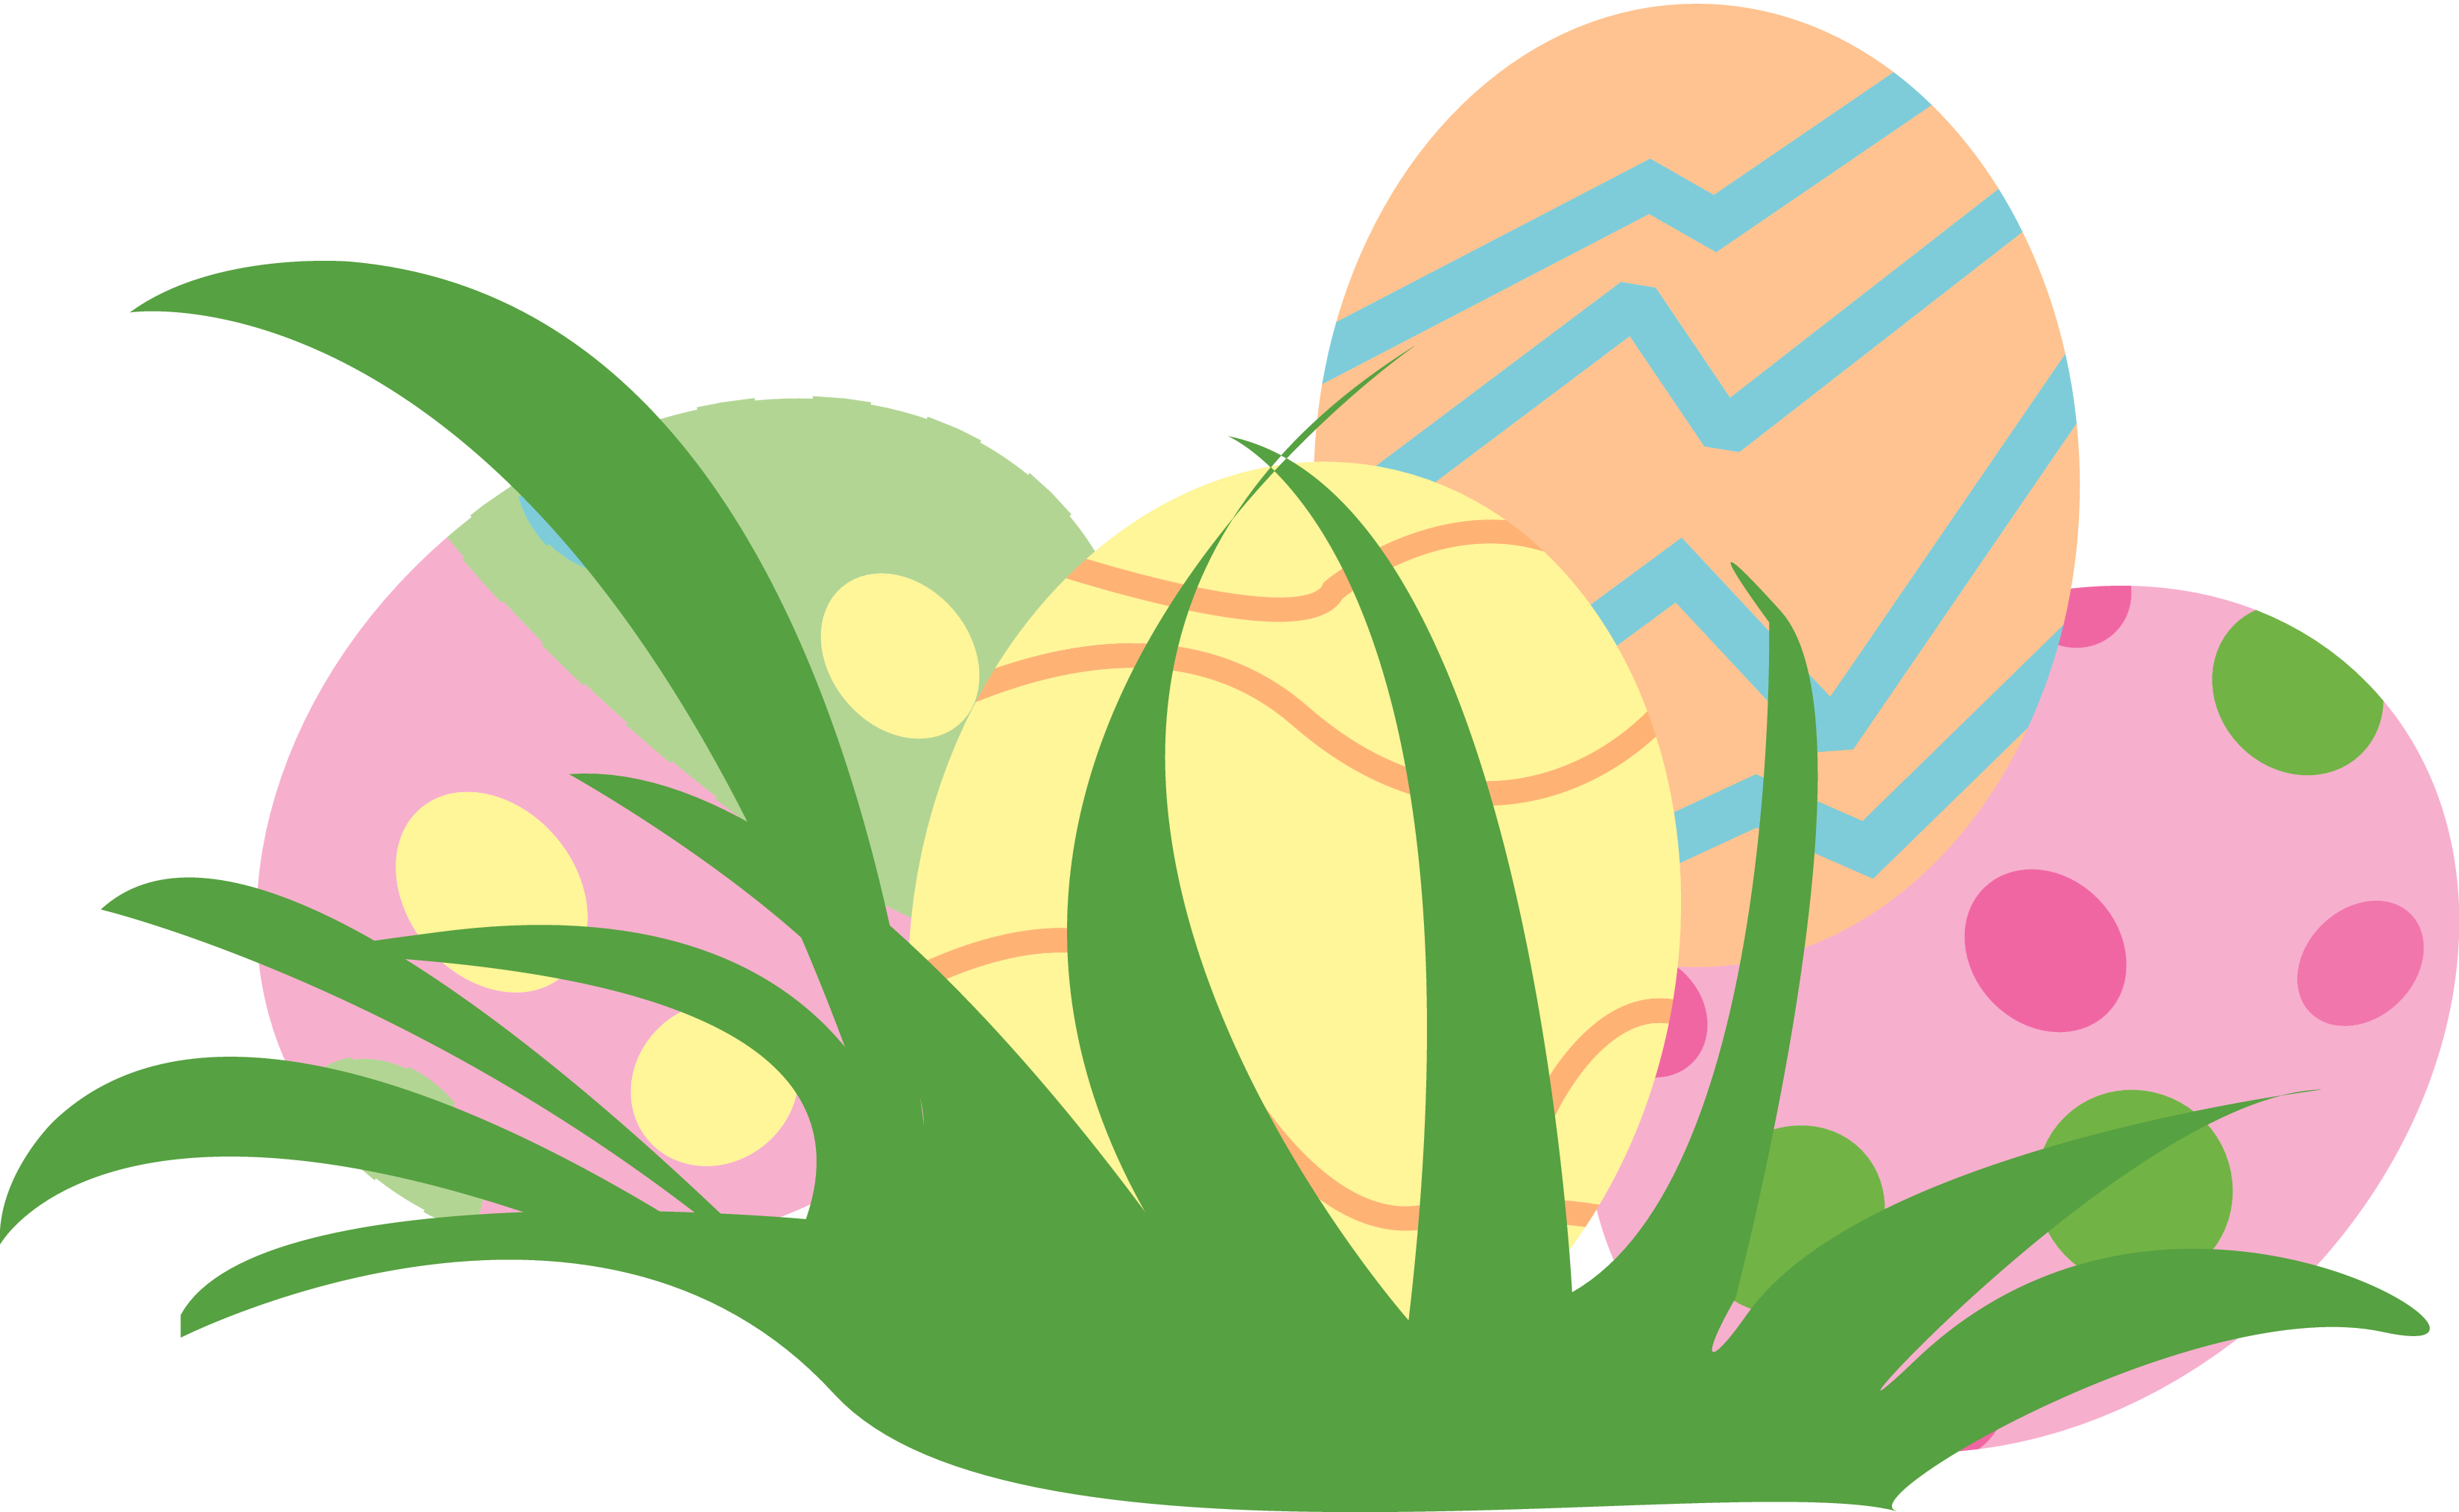 Pin by denise ernst on Easter/Spring | Pinterest | Easter and Cards for Easter Egg Hunt Clipart  75sfw